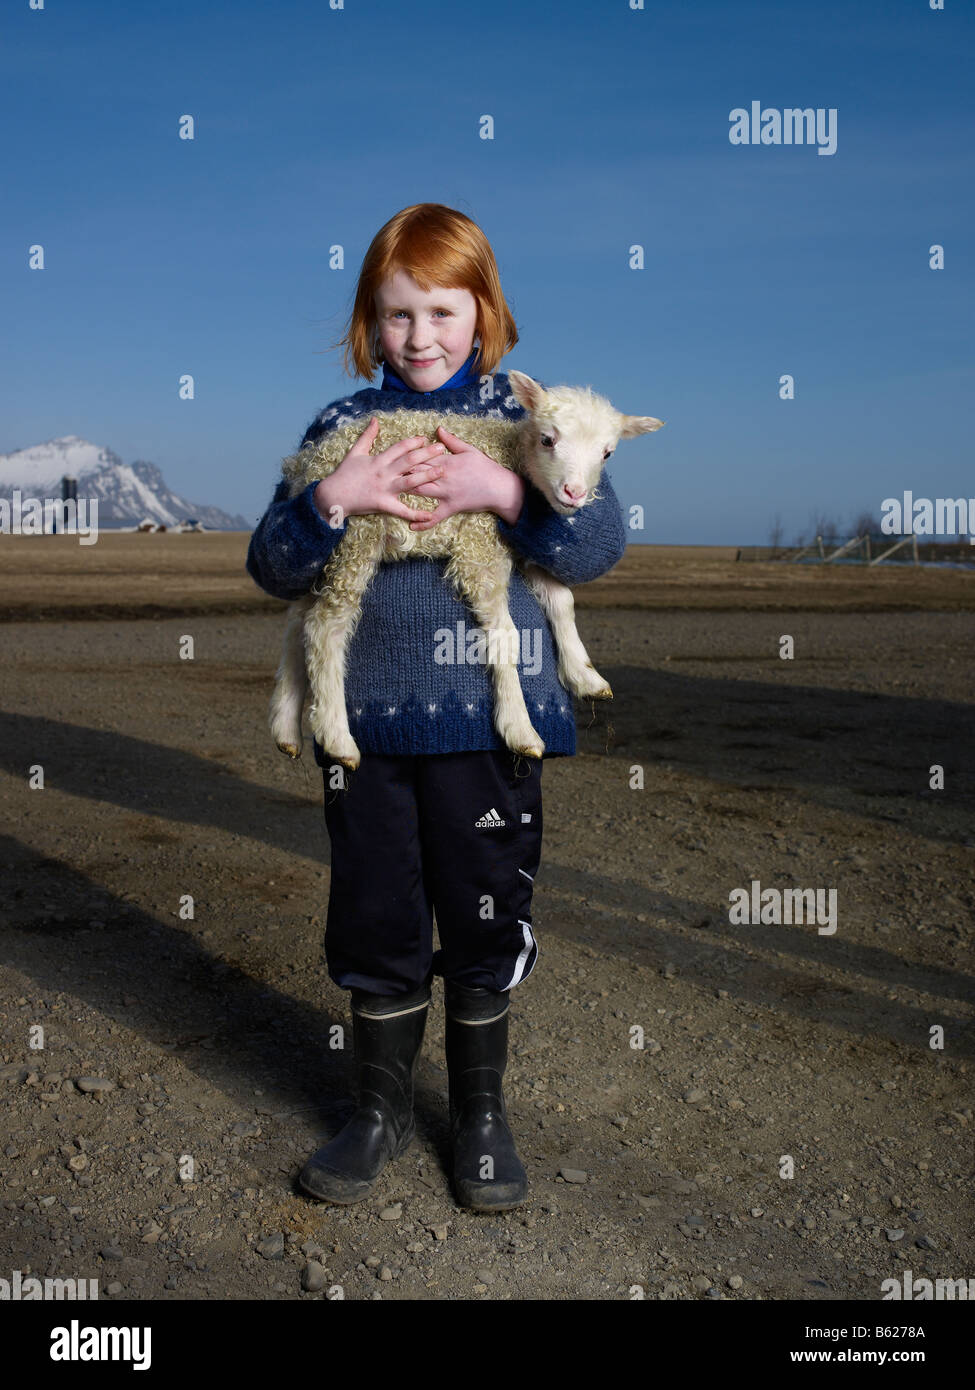 Red headed girl on farm with lamb, Hornafjordur fjord Eastern Iceland - Stock Image